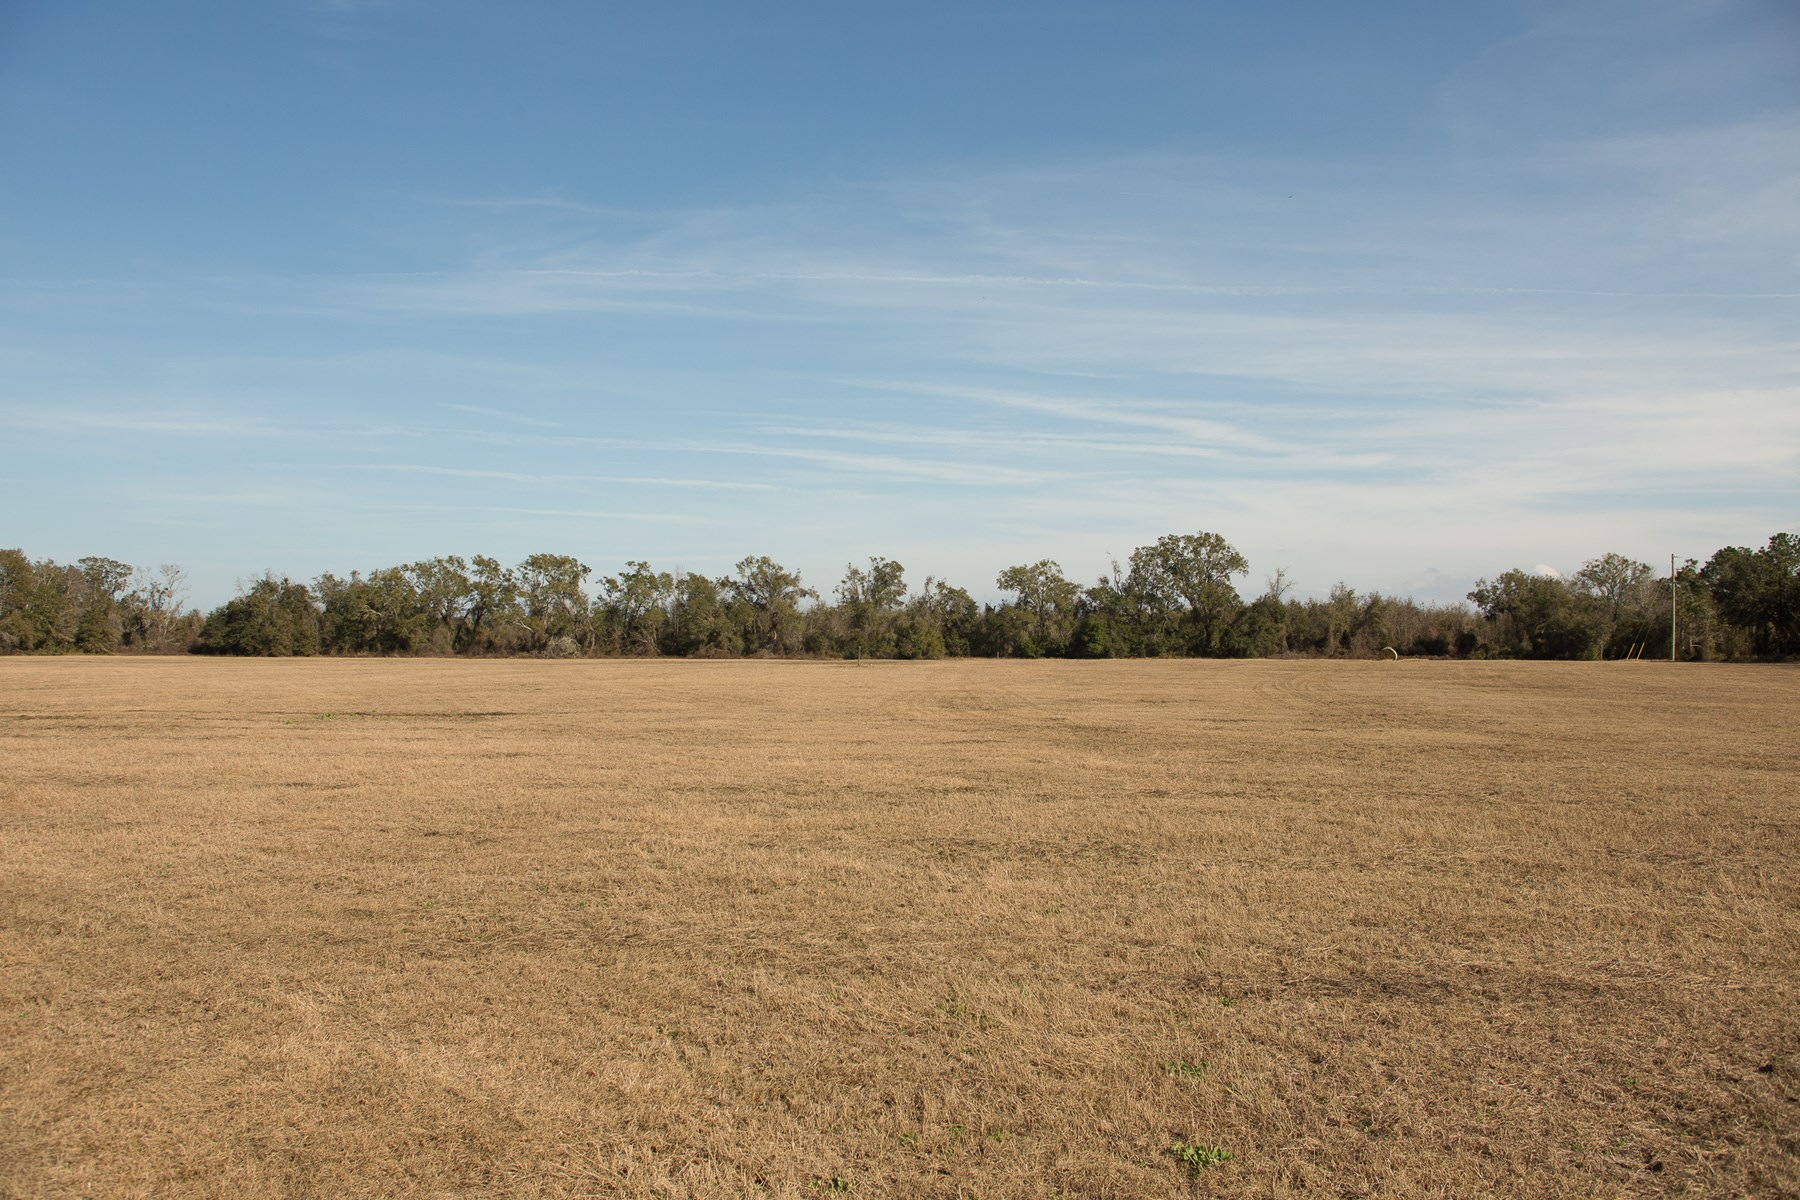 106 Acres For Sale in Mayo, FL